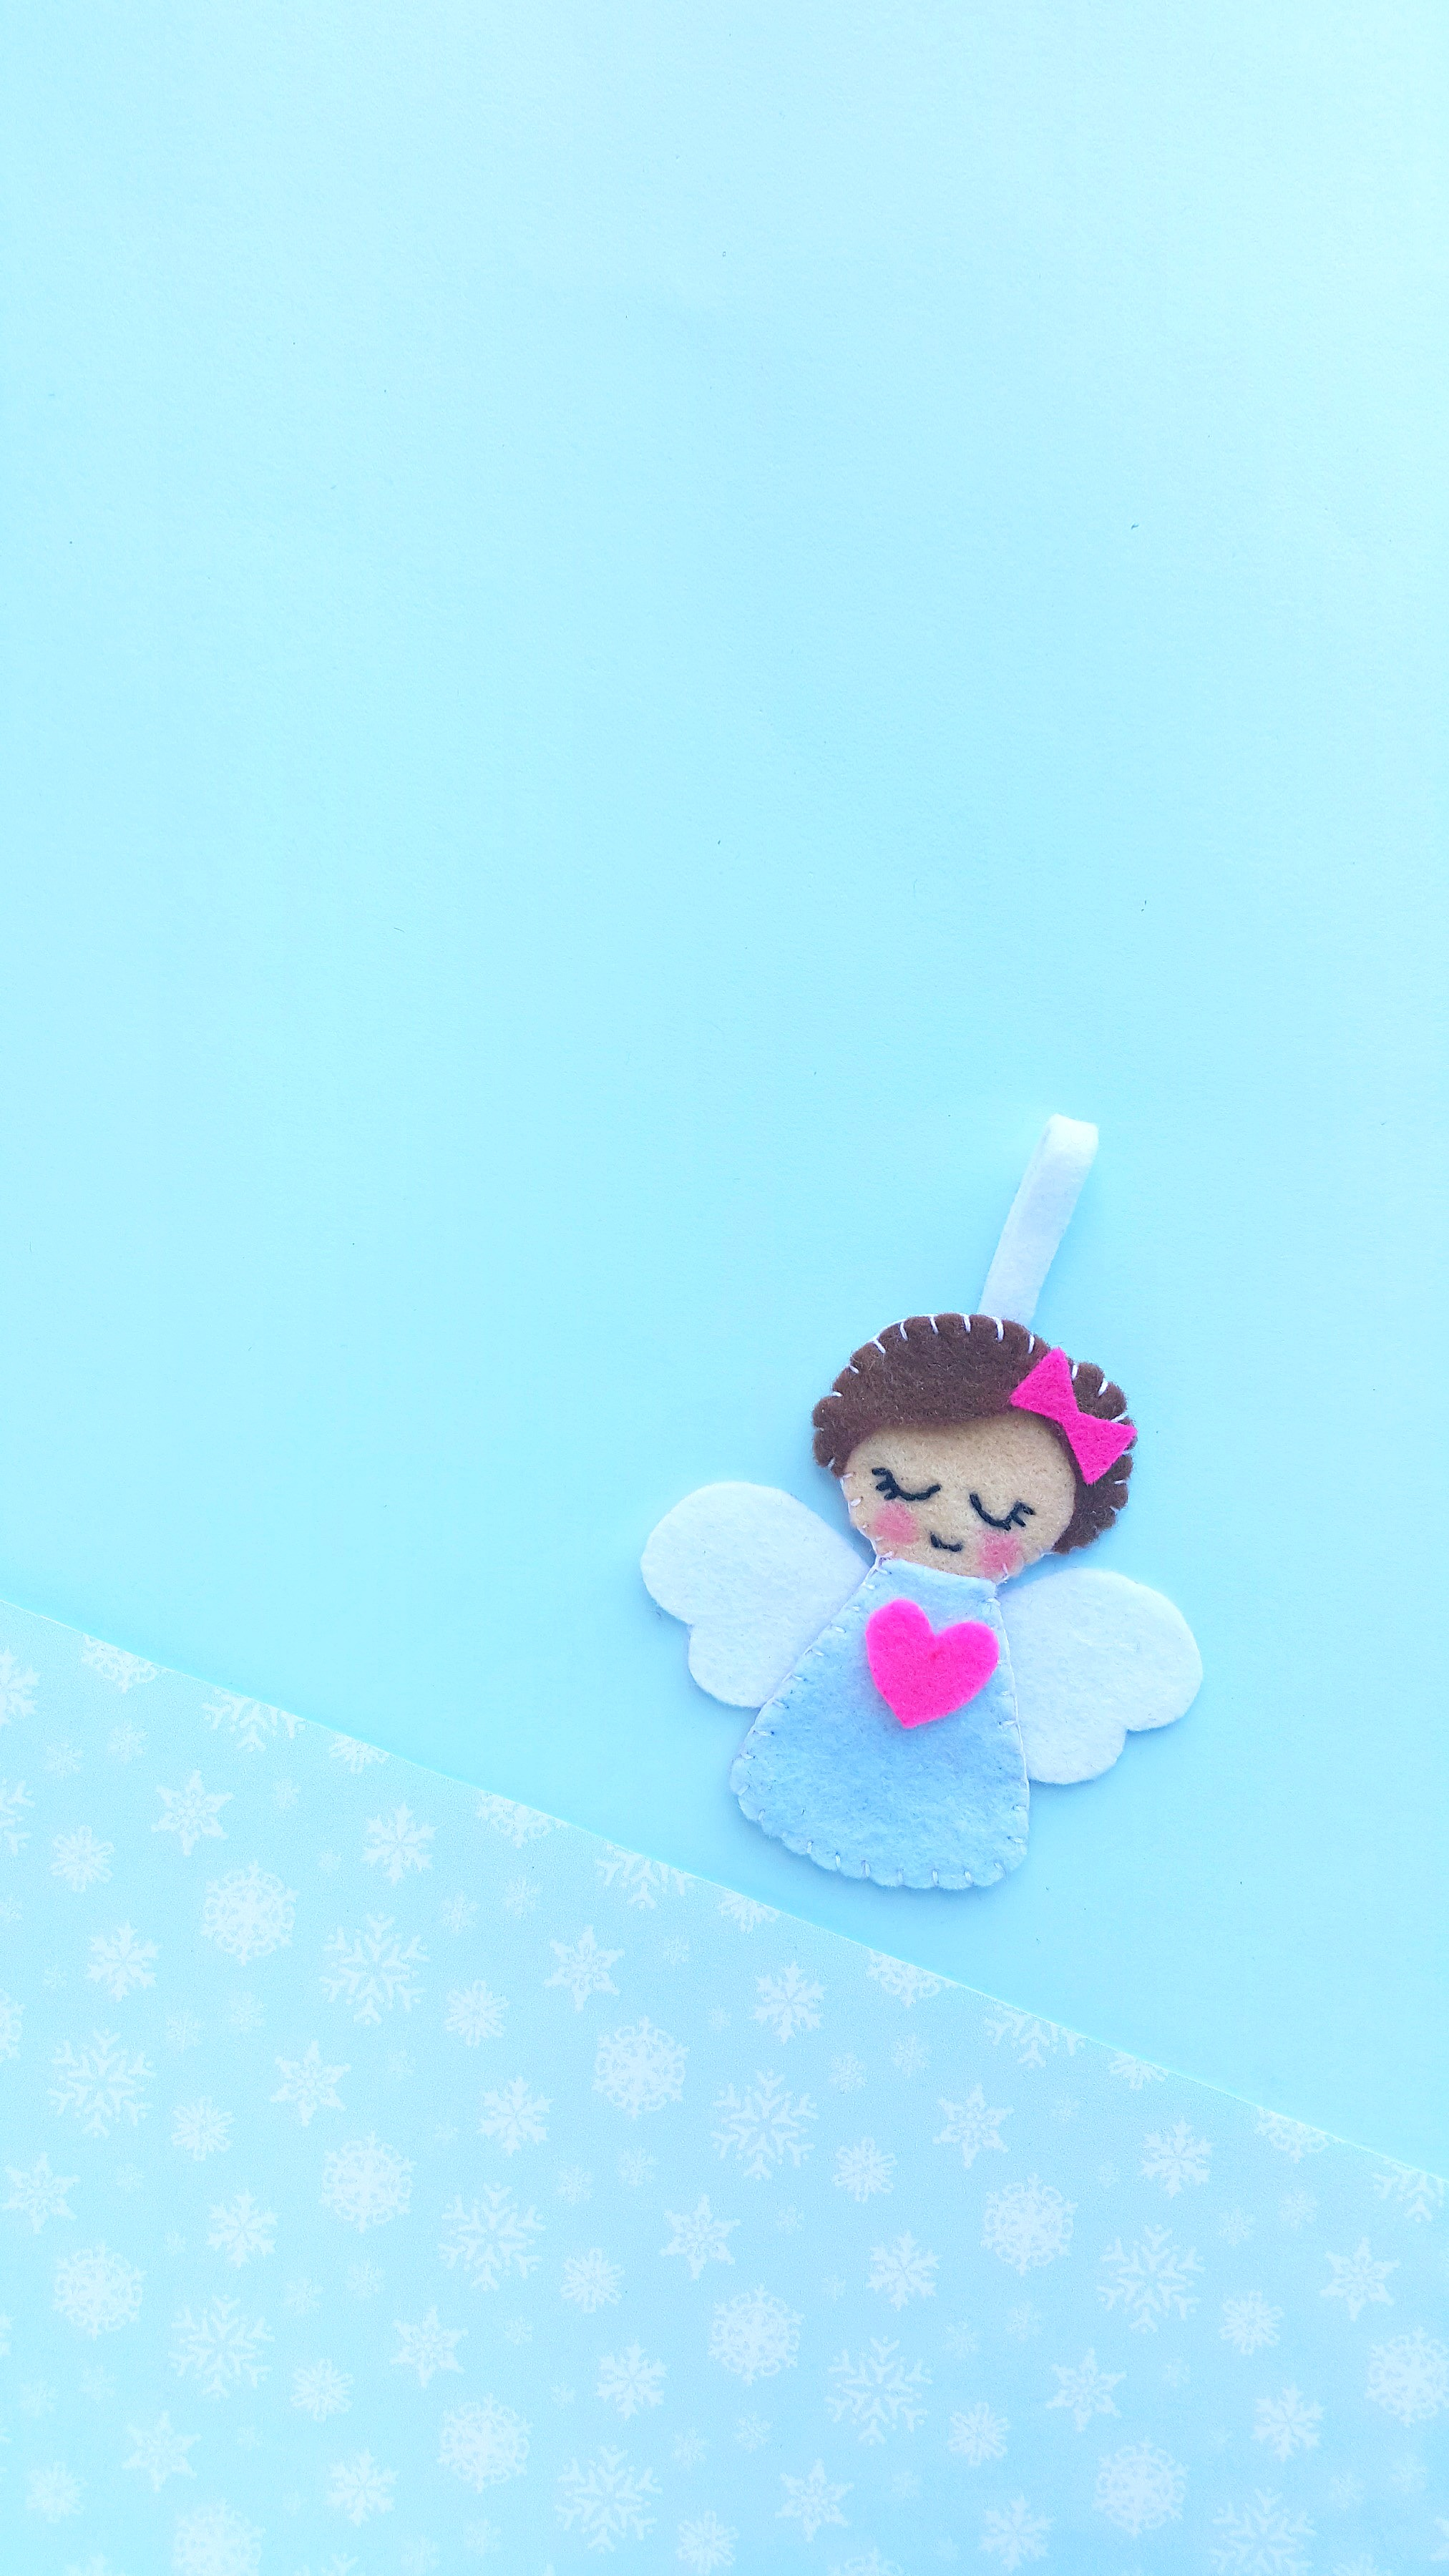 A felt angel Christmas ornament is laying on a blue background with white snowflakes.